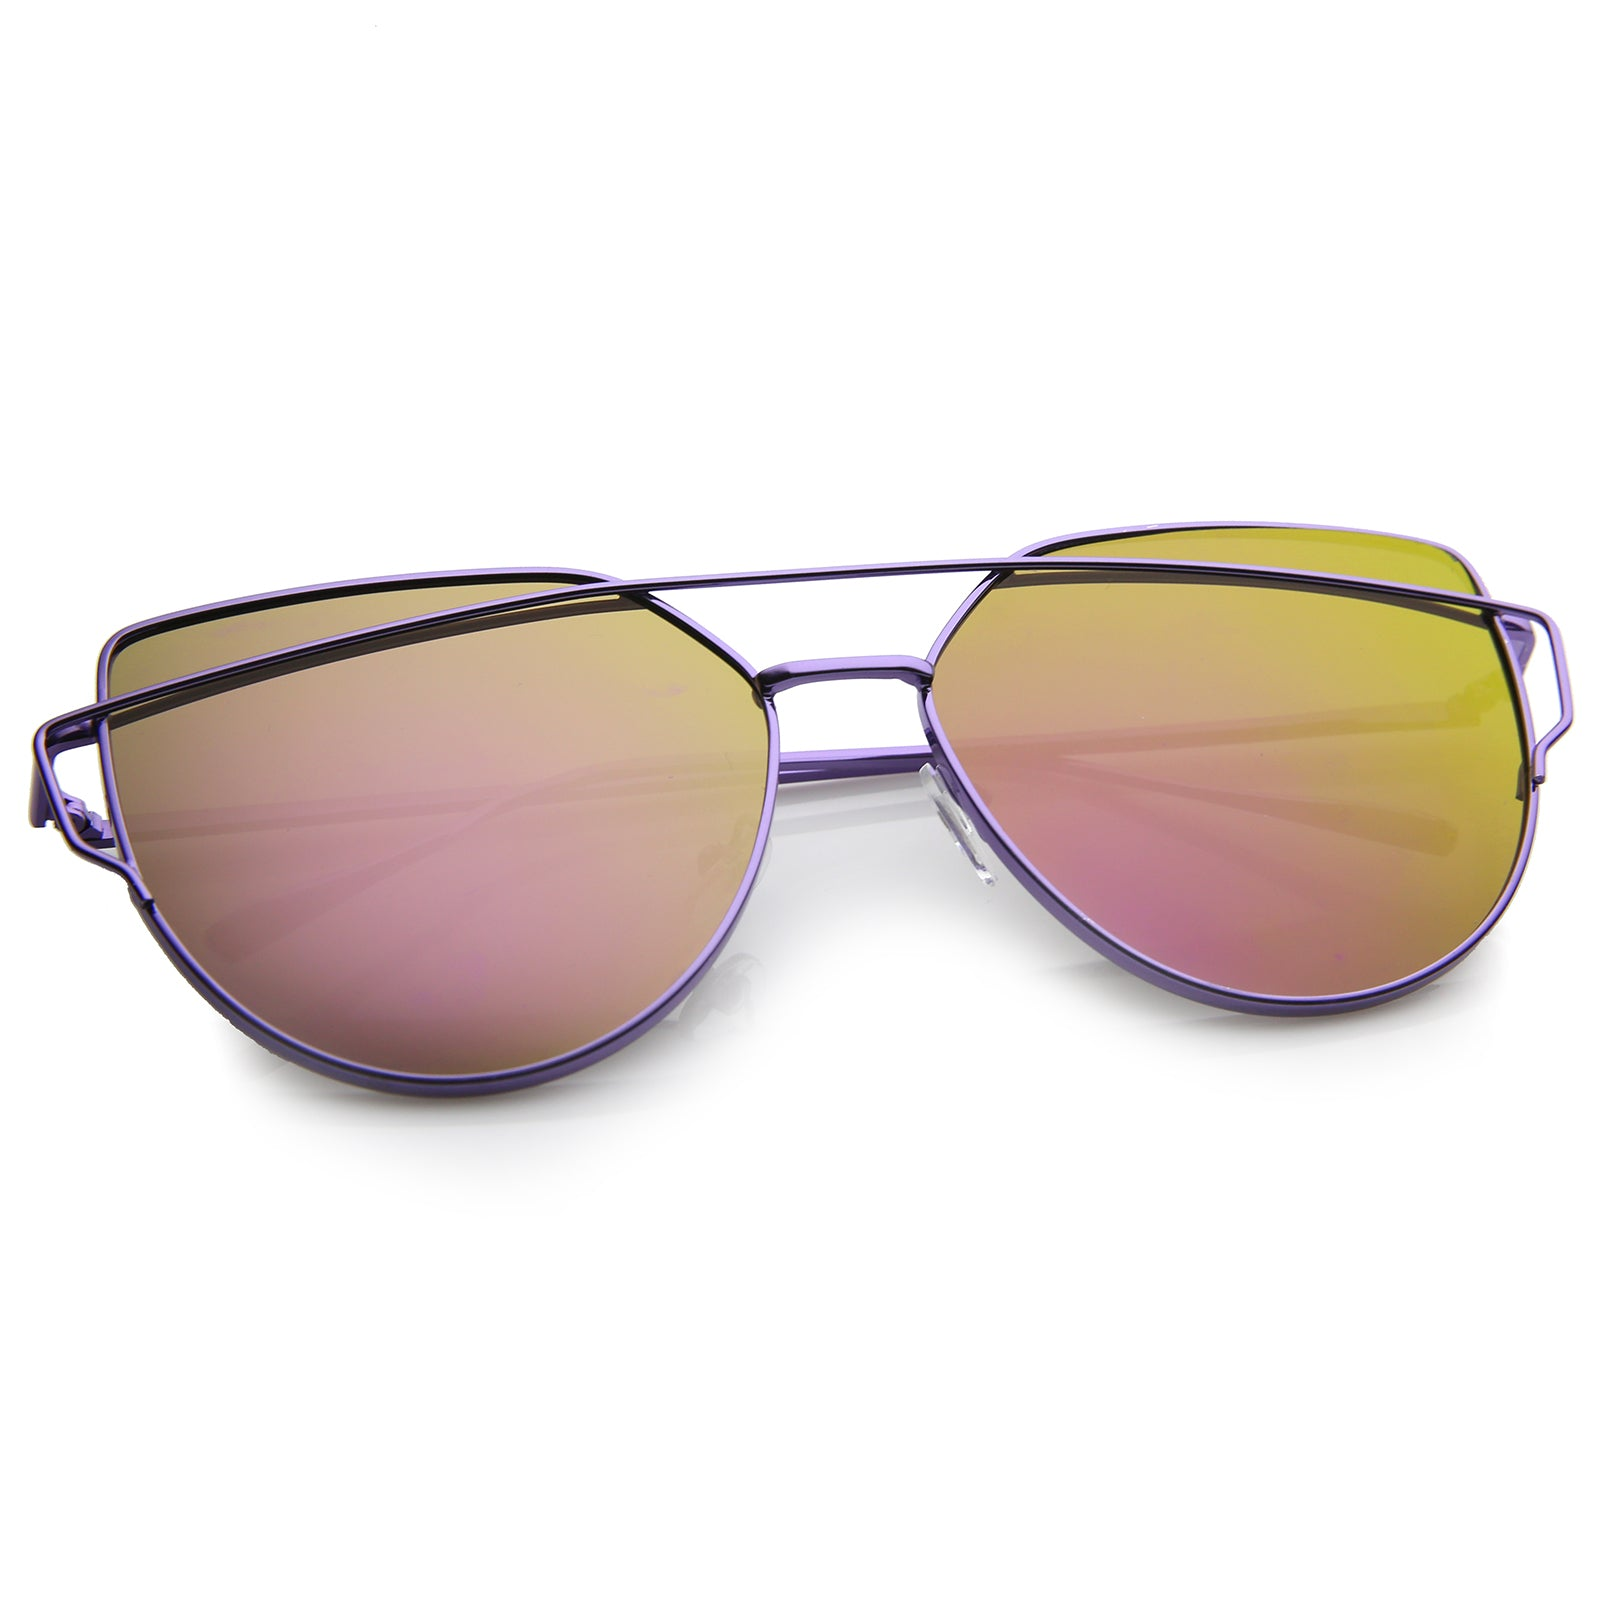 Oversize Metal Frame Thin Temple Color Mirror Flat Lens Aviator Sunglasses 62mm - sunglass.la - 16